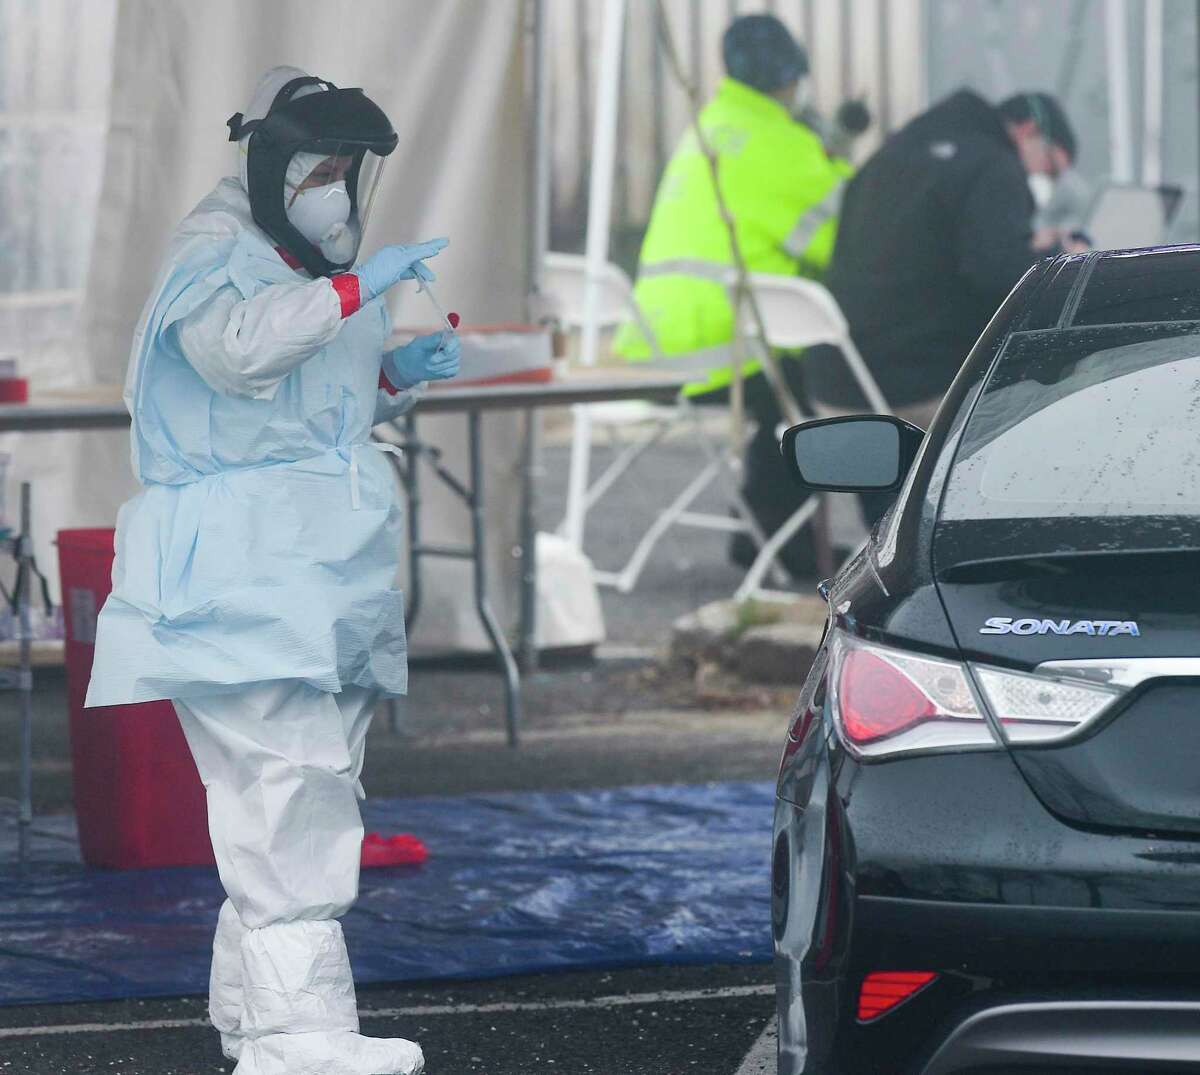 Medical personnel from Murphy Medical Associates administer drive-thru screenings for the COVID-19 coronavirus at a mobile testing site set up at Cummings Beach in Stamford, Conn. , March 20, 2020.